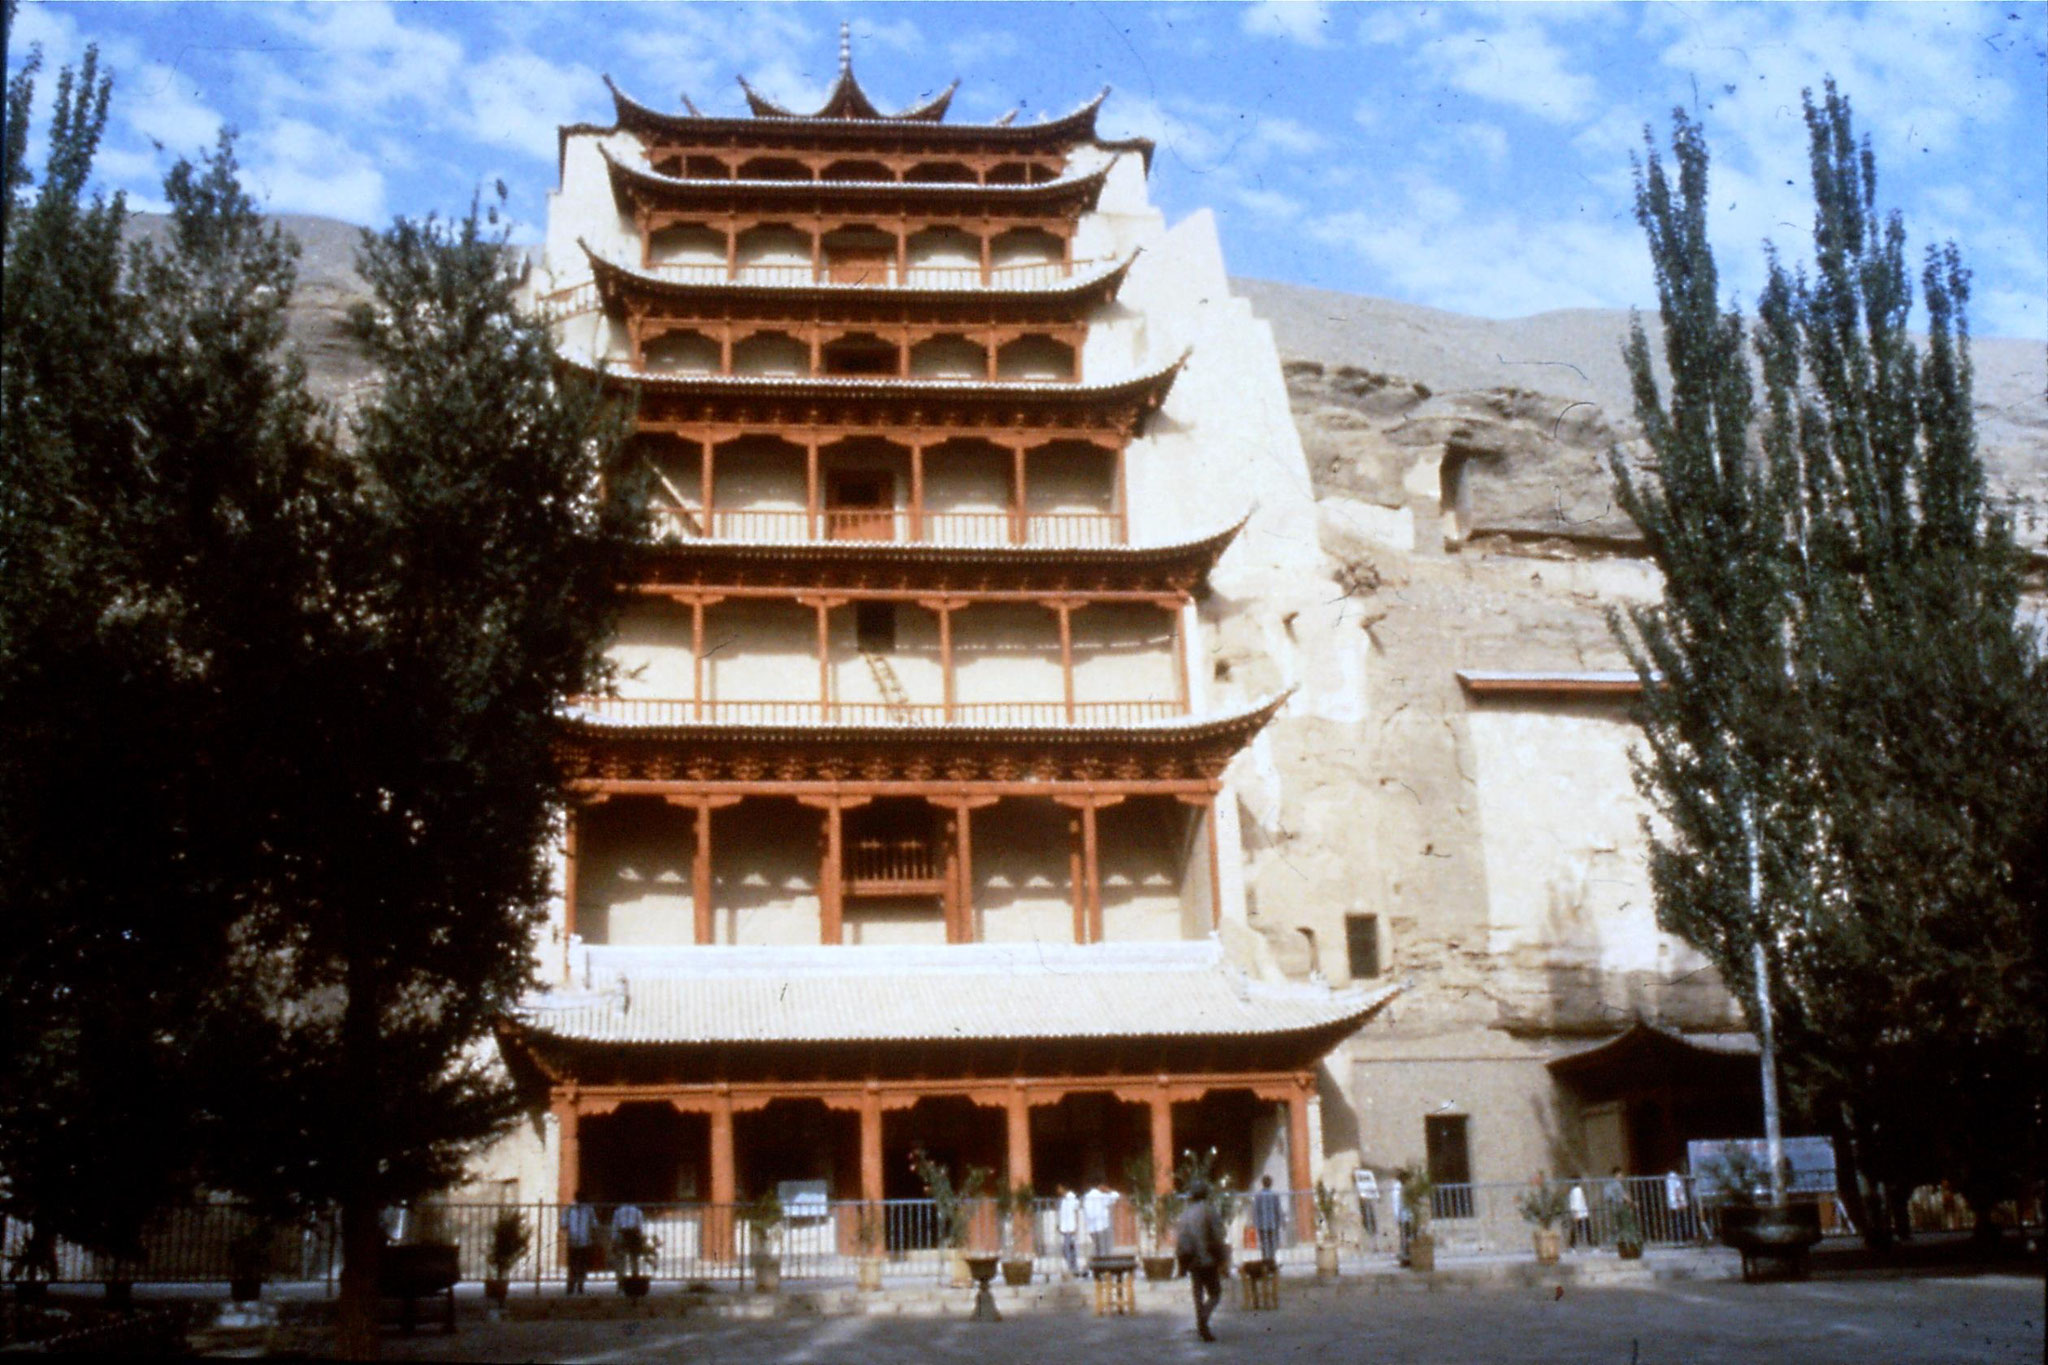 26/8/1989:19: Mogao Caves, Dunhuang, outside Giant Buddha Caves